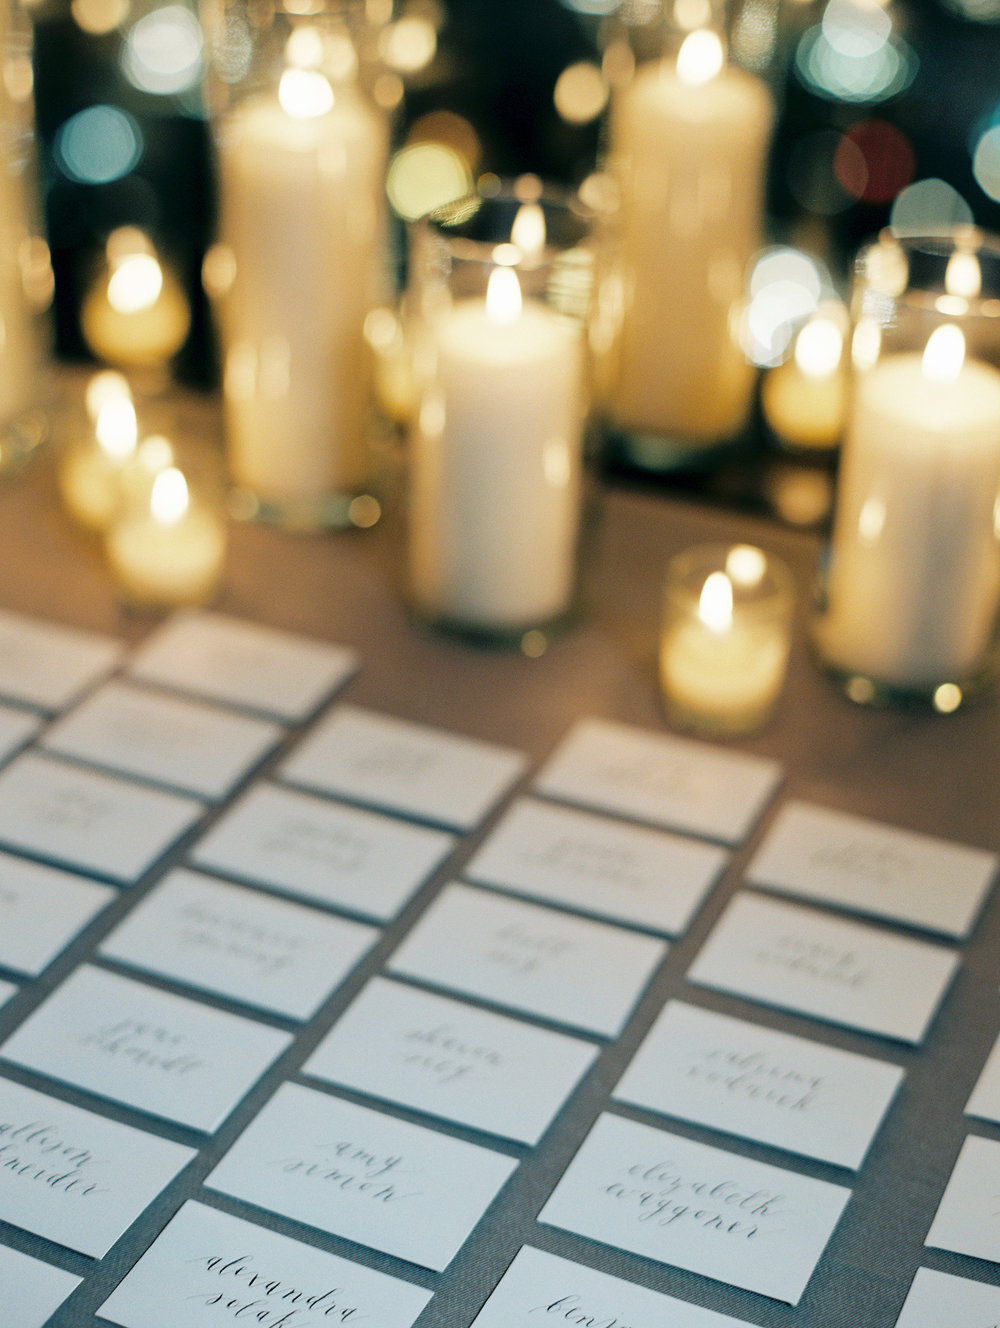 Candles by Fleur Inc, Calligraphy by Allie Hasson, Photo by Clary Pfeiffer